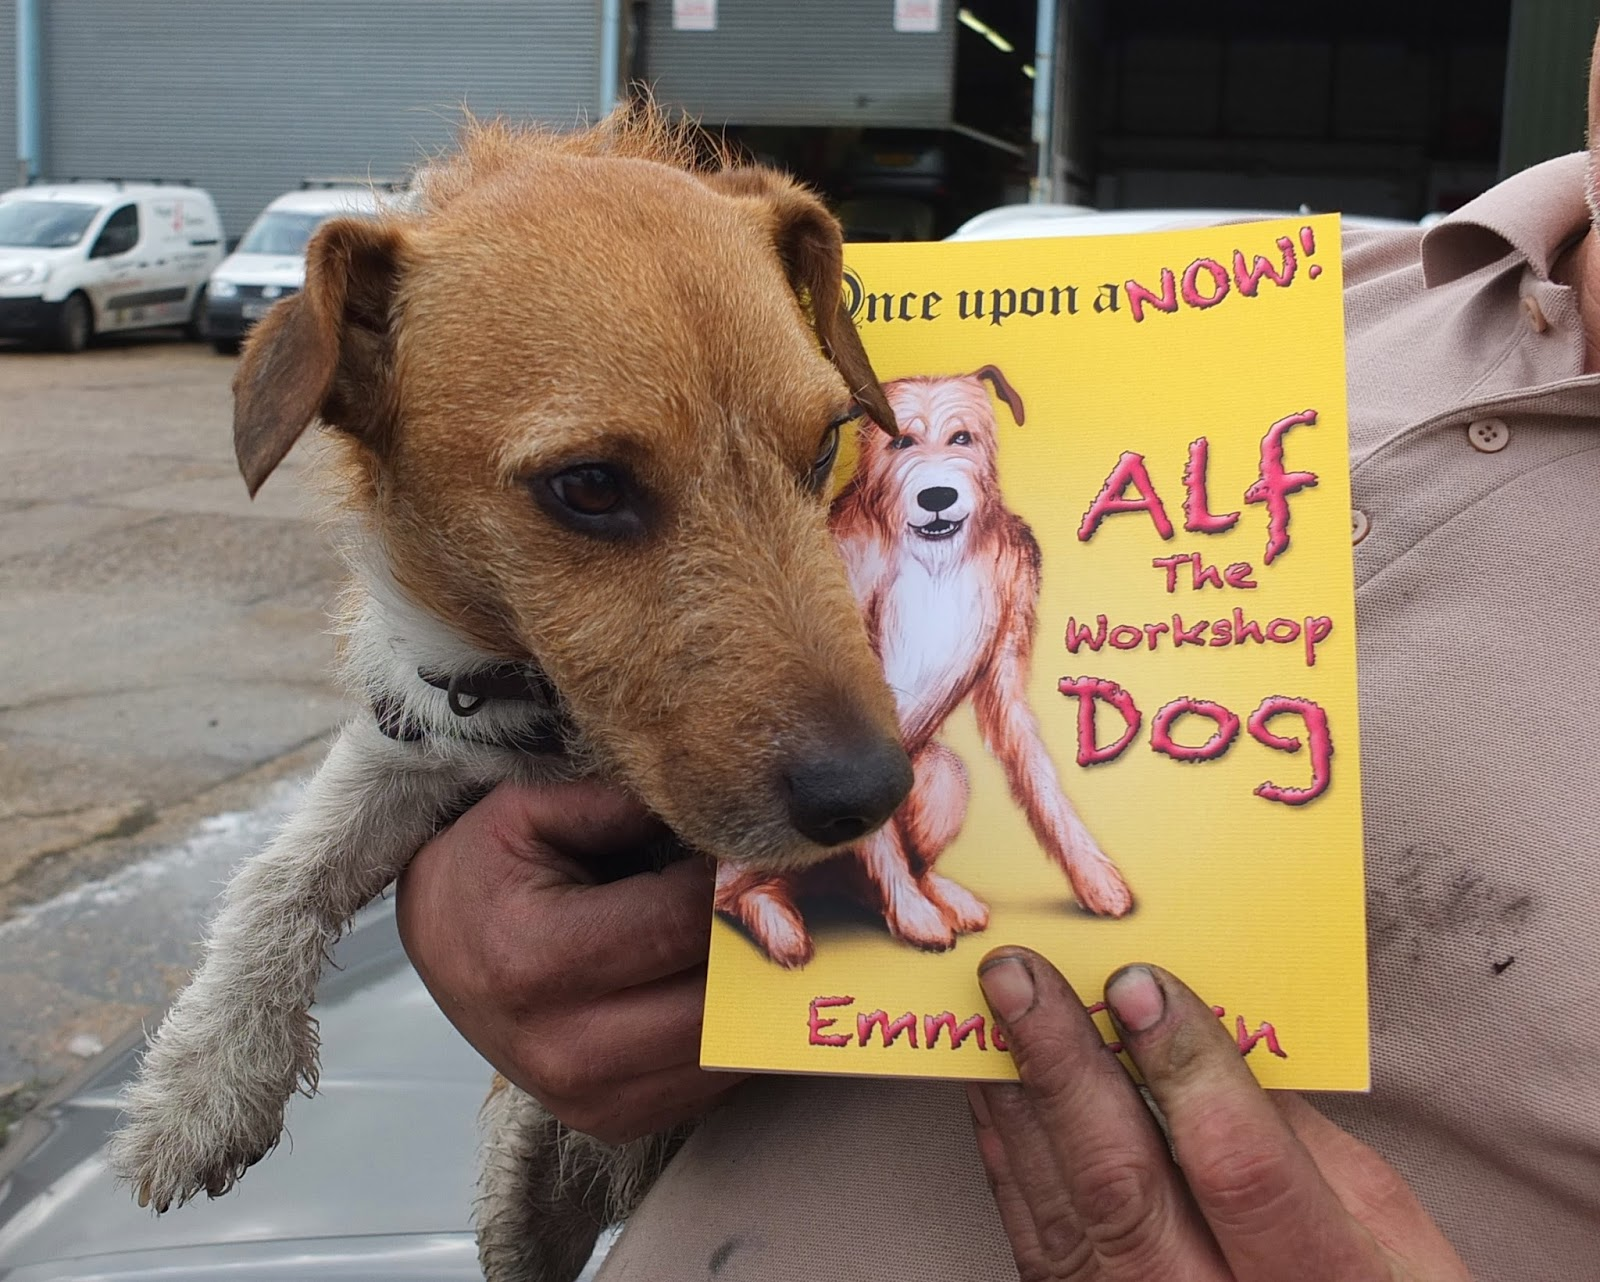 Alf The workshop dog, Alf, Dog, Children's fiction, paperback book, kid's books